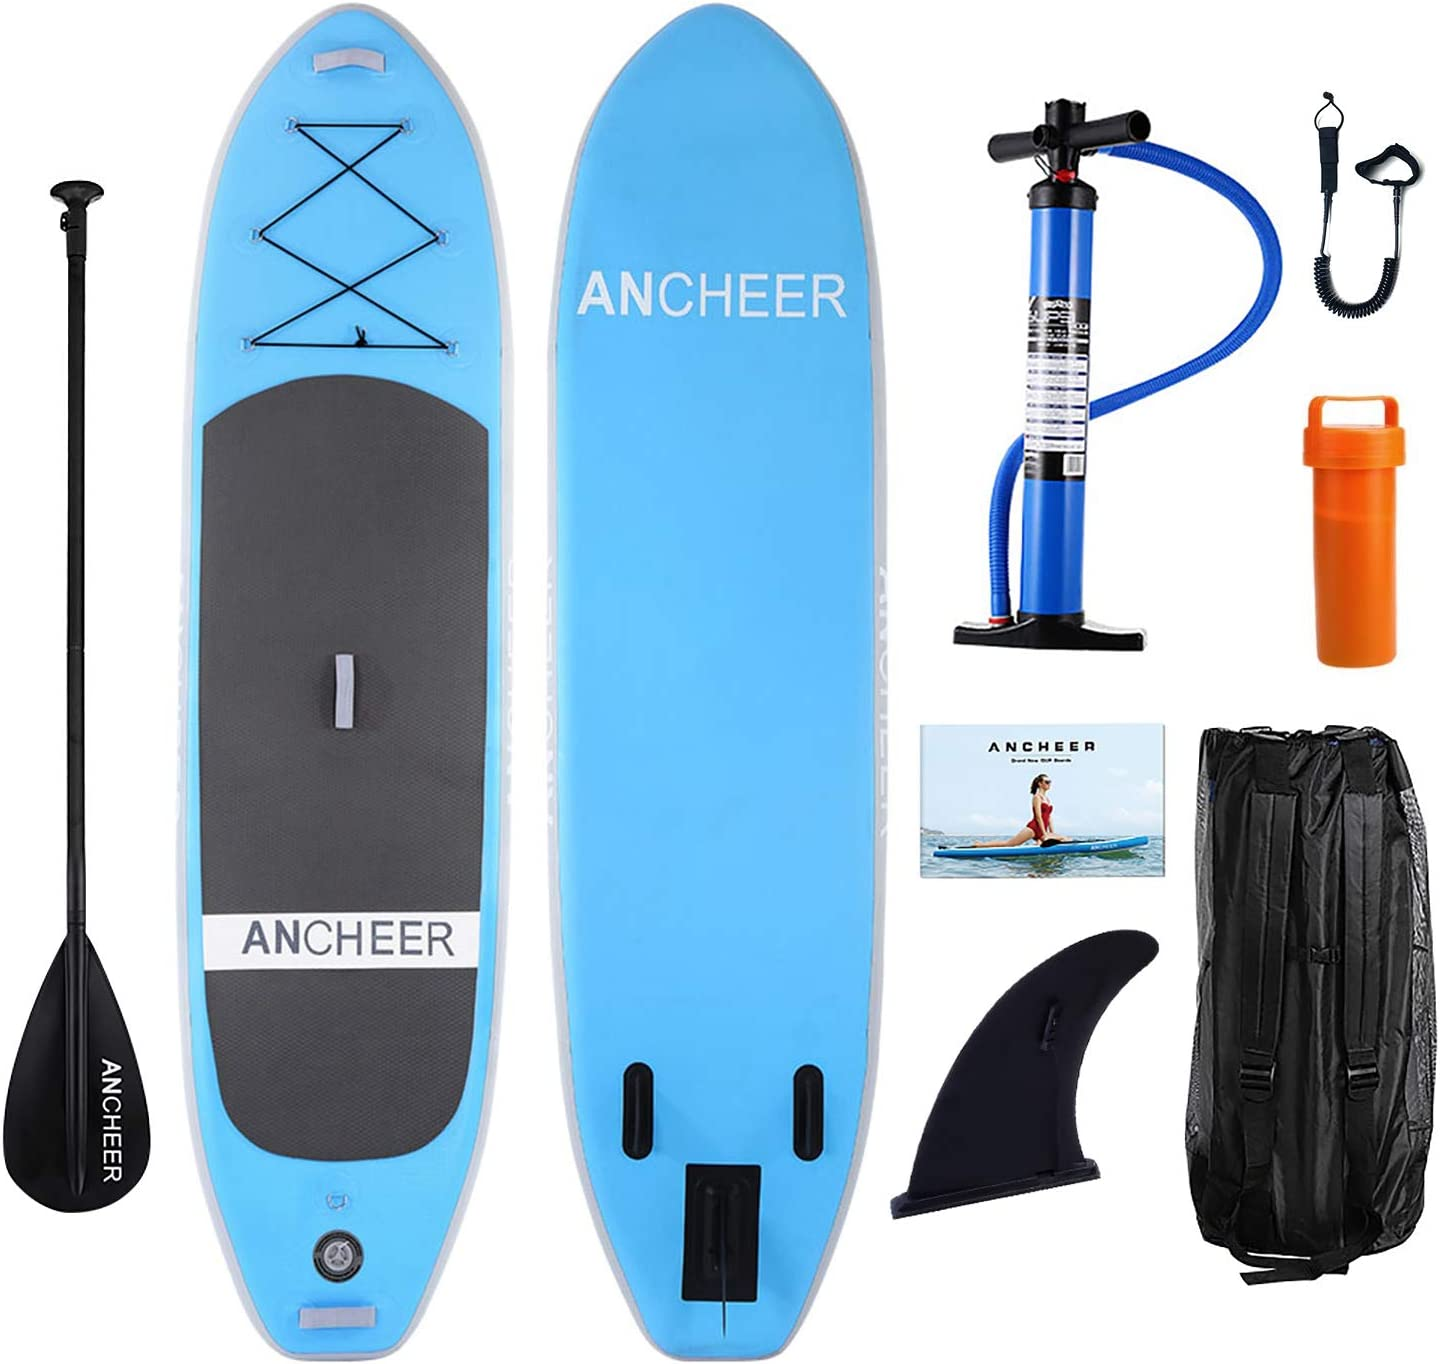 ANCHEER Inflatable Stand Up Paddle Board 10 , Non-Slip Deck 6 Inches Thick , iSUP Boards Package w Adjustable Paddle, Leash, Hand Pump and Backpack, Youth Adult